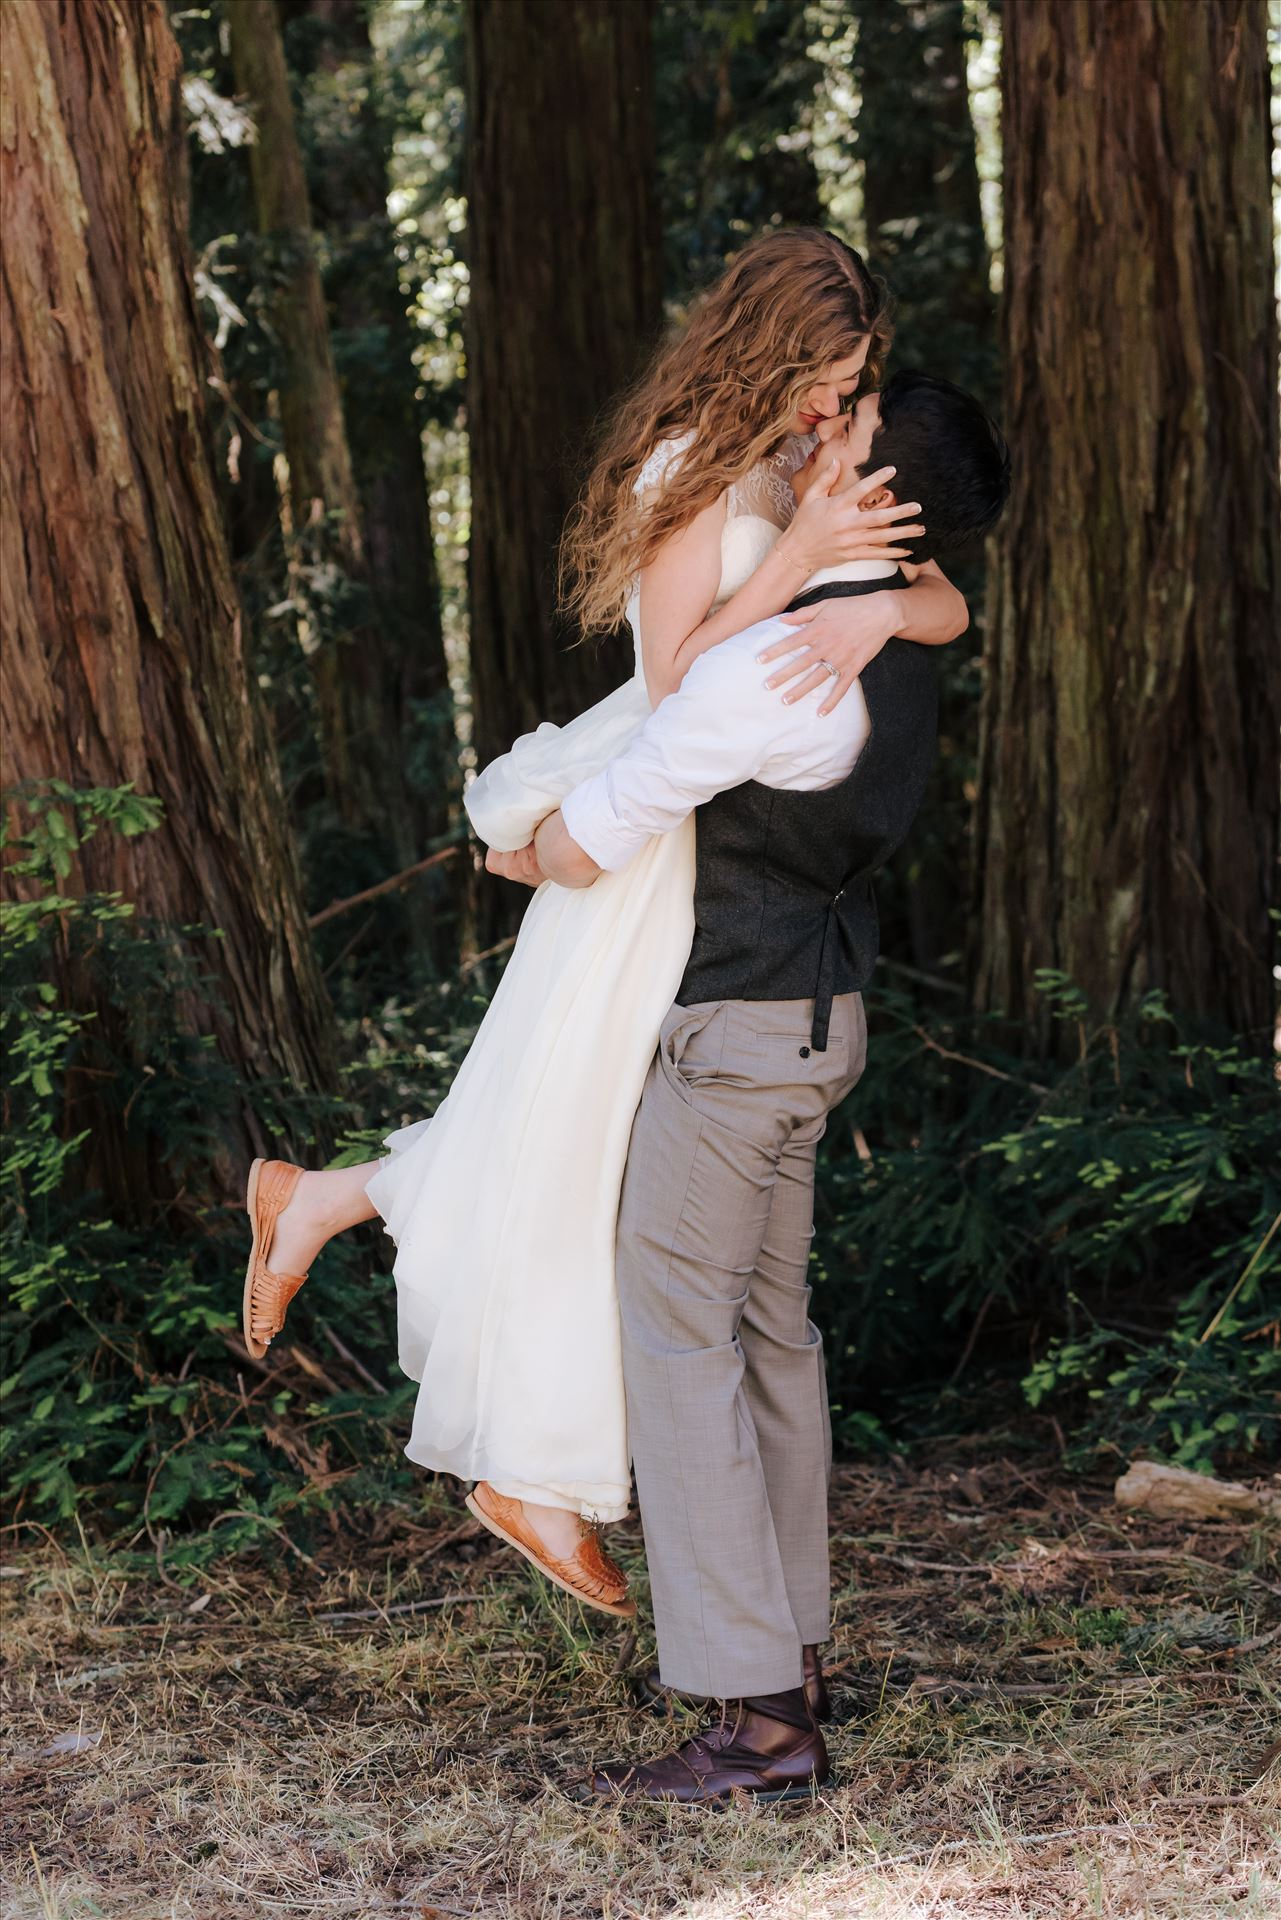 FW-6277.JPG - Mt Madonna wedding in the redwoods outside of Watsonville, California with a romantic and classic vibe by sarah williams of mirror's edge photography a san luis obispo wedding photographer.  Groom lifts Bride by Sarah Williams